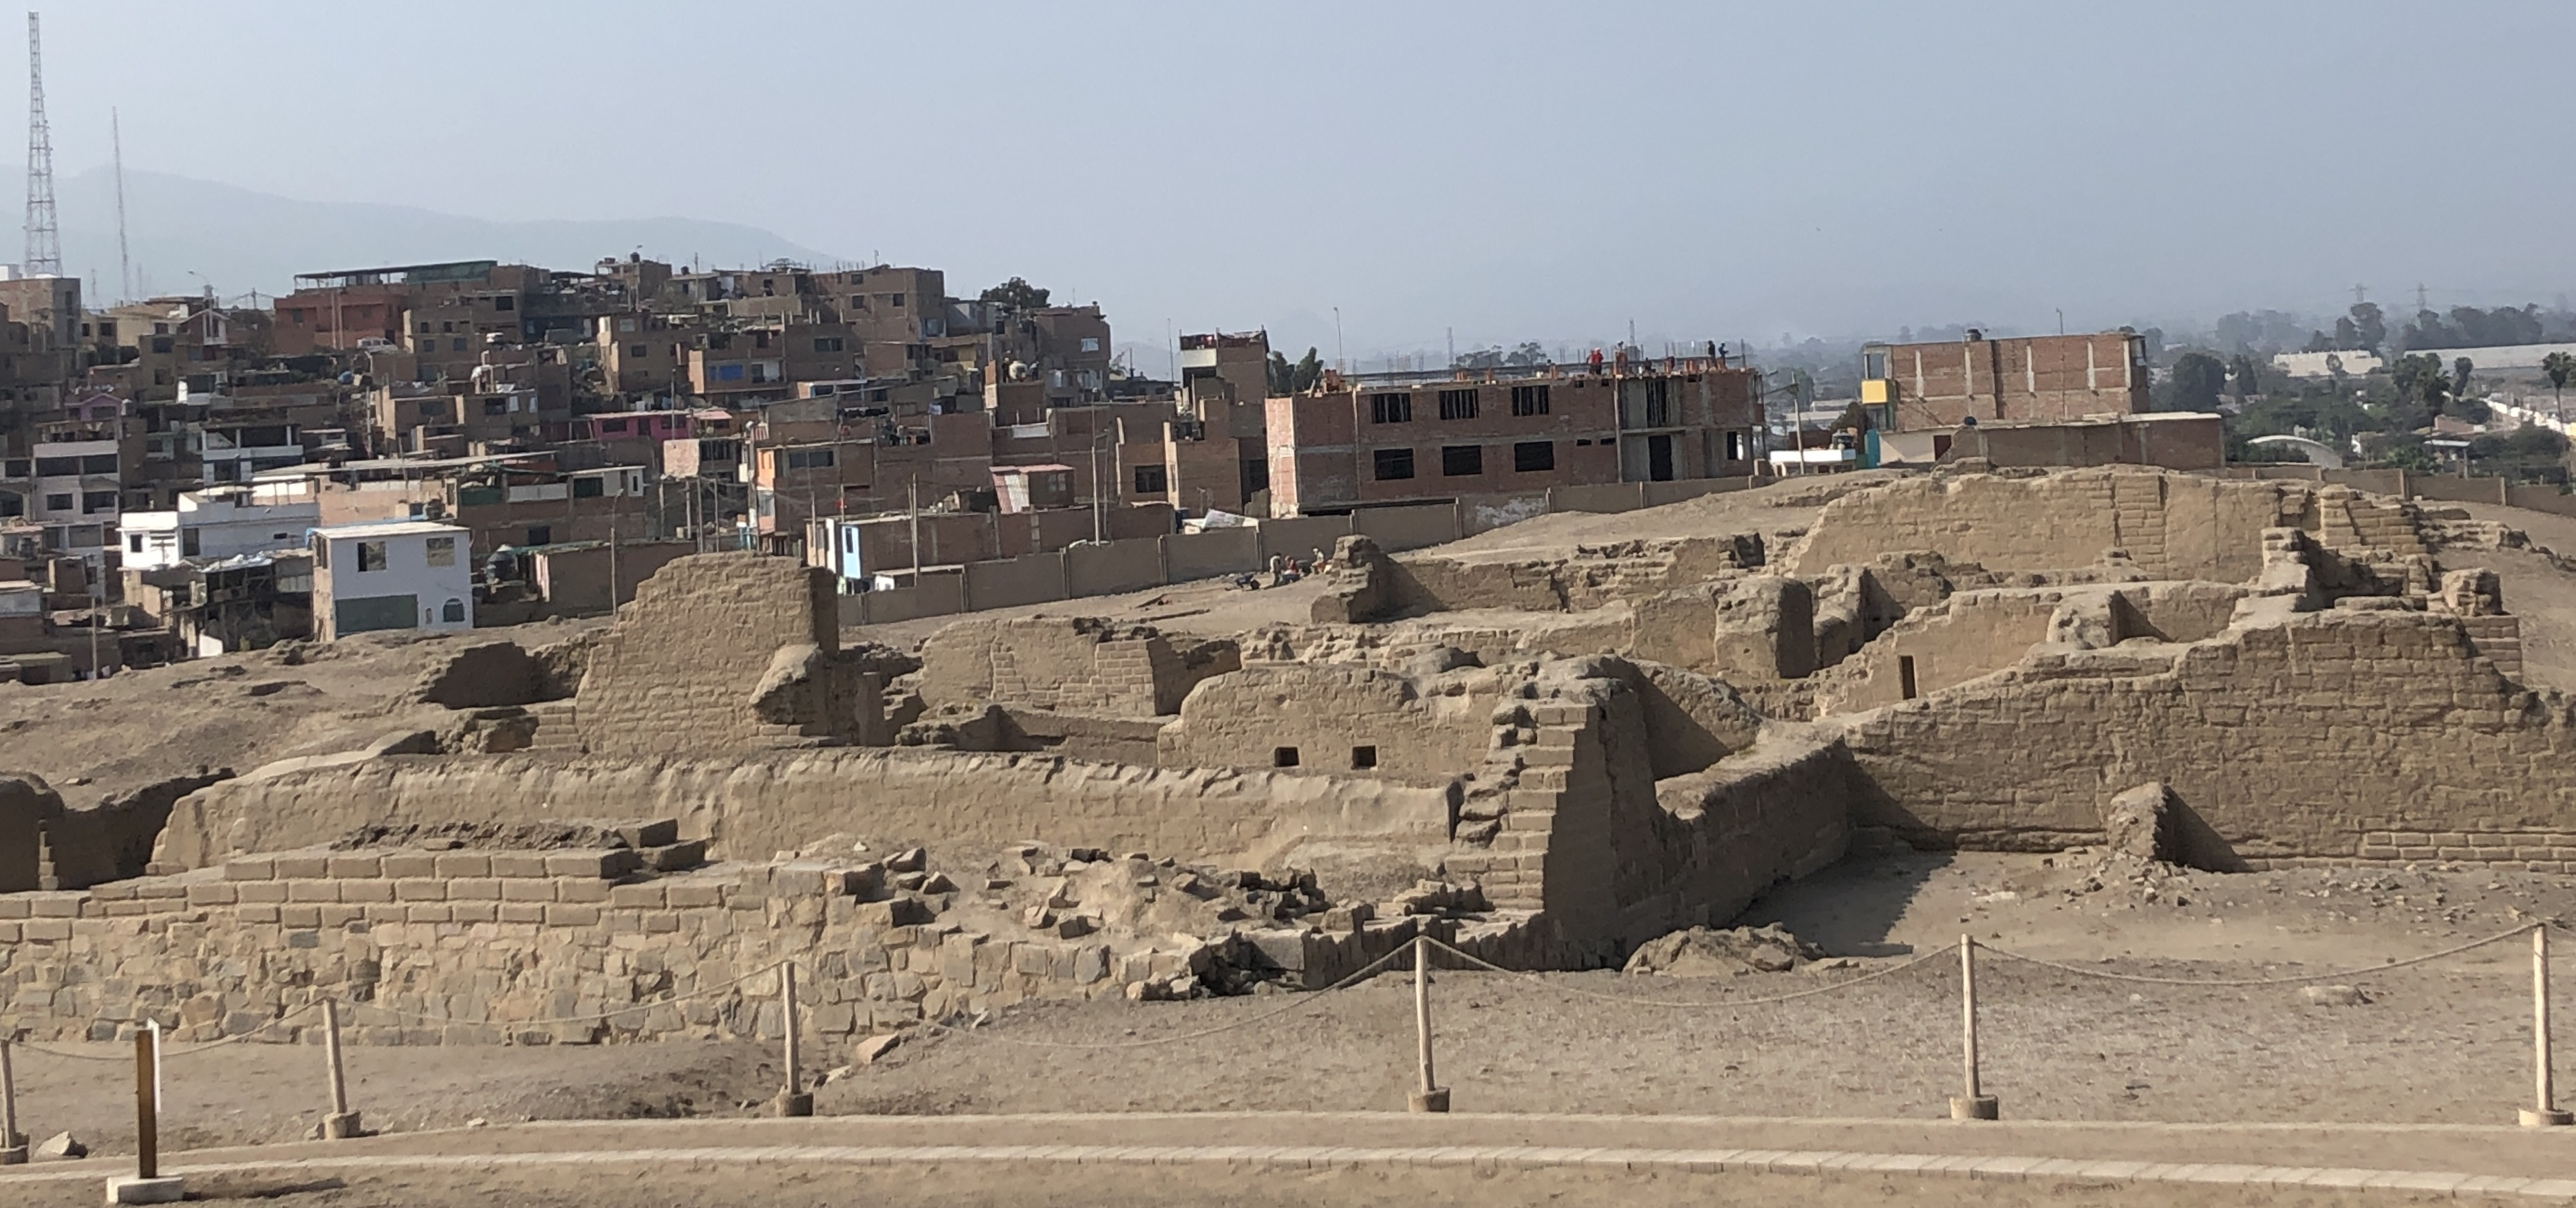 pachacamac ruins and the city nearby